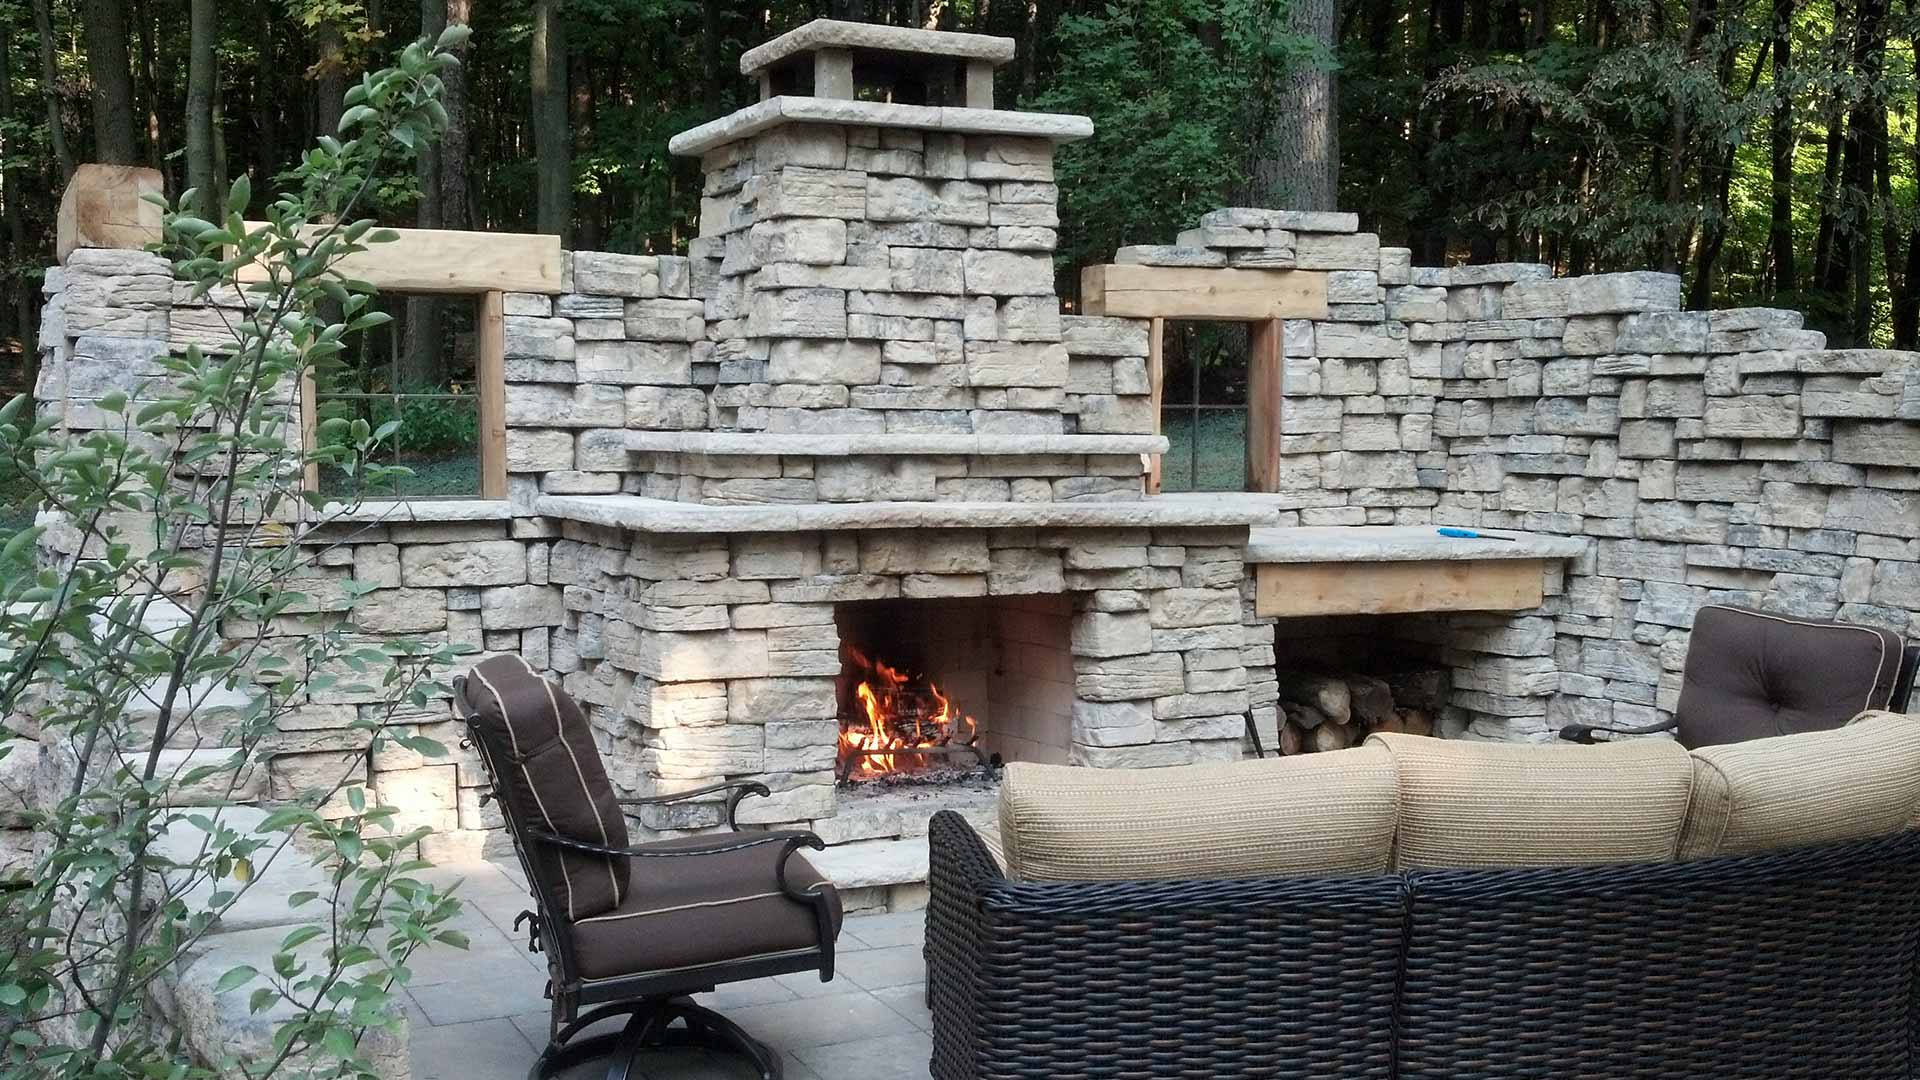 Custom stone outdoor fireplace and seating area in Grand Rapids, MI.